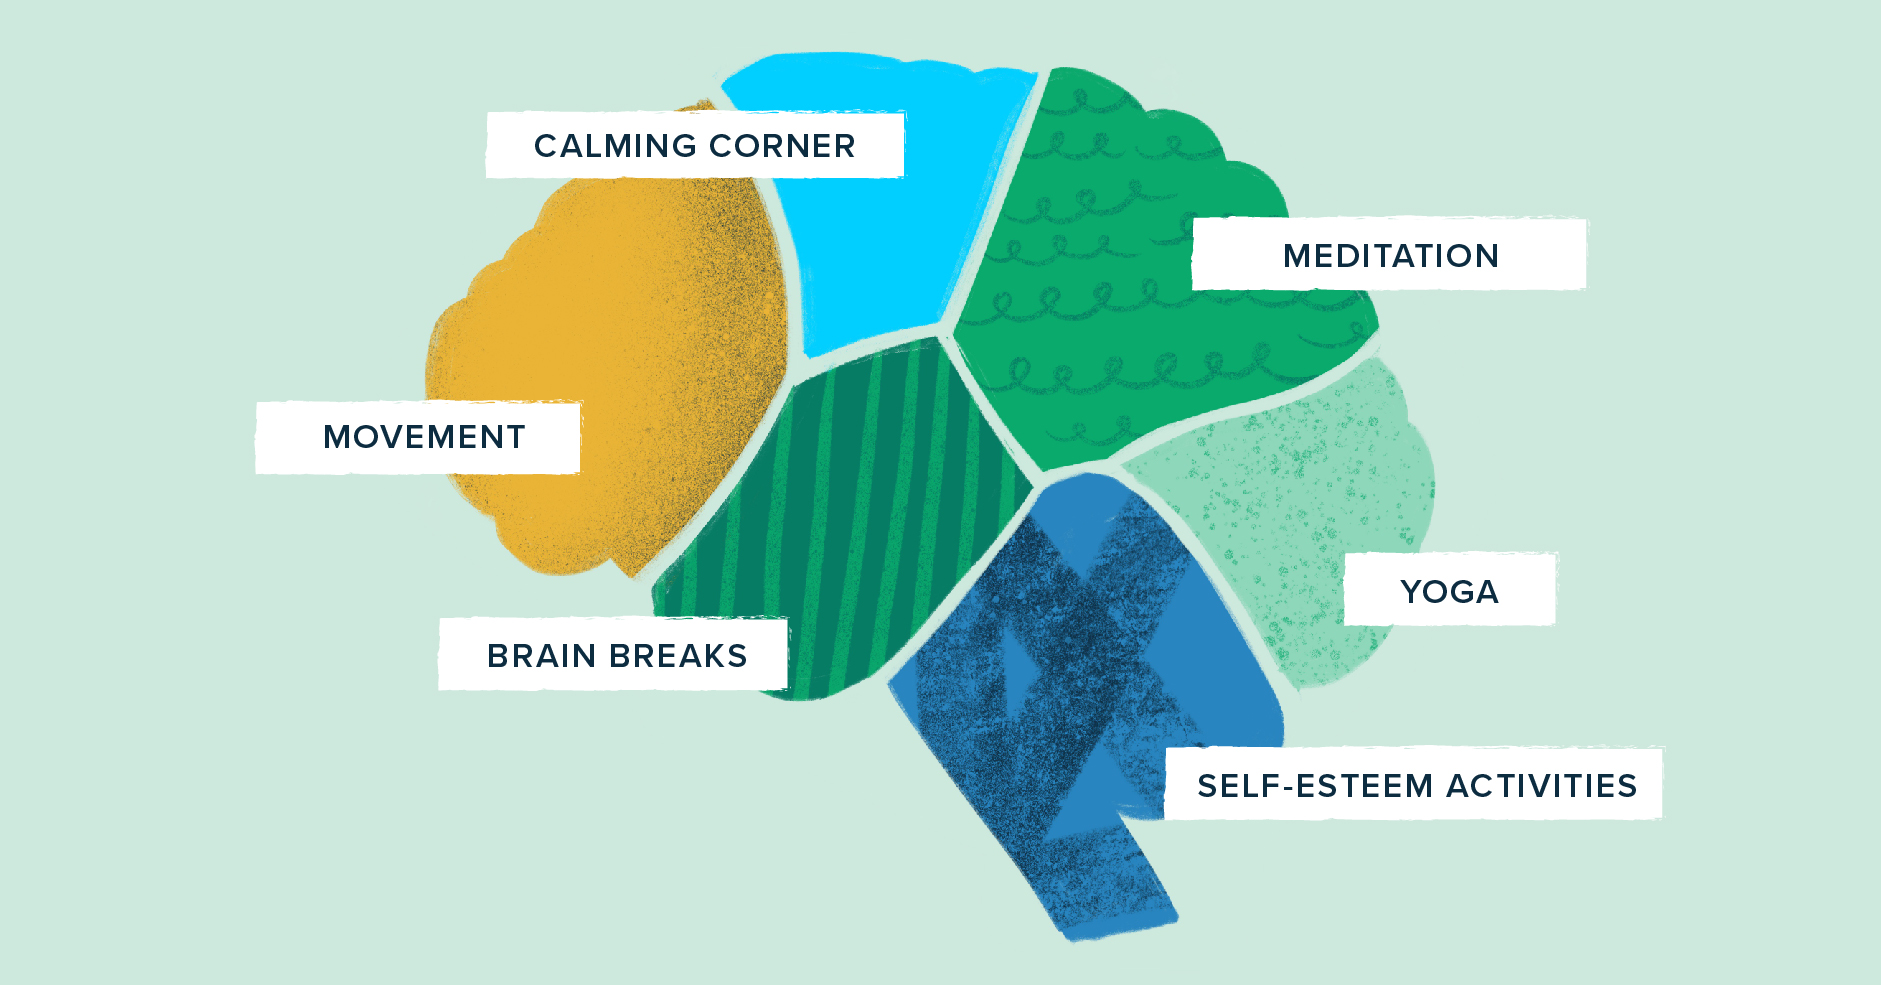 illustration of a brain divded into six parts that are labeled as calming corner, meditation, yoga, self-esteem, brain breaks, and movement